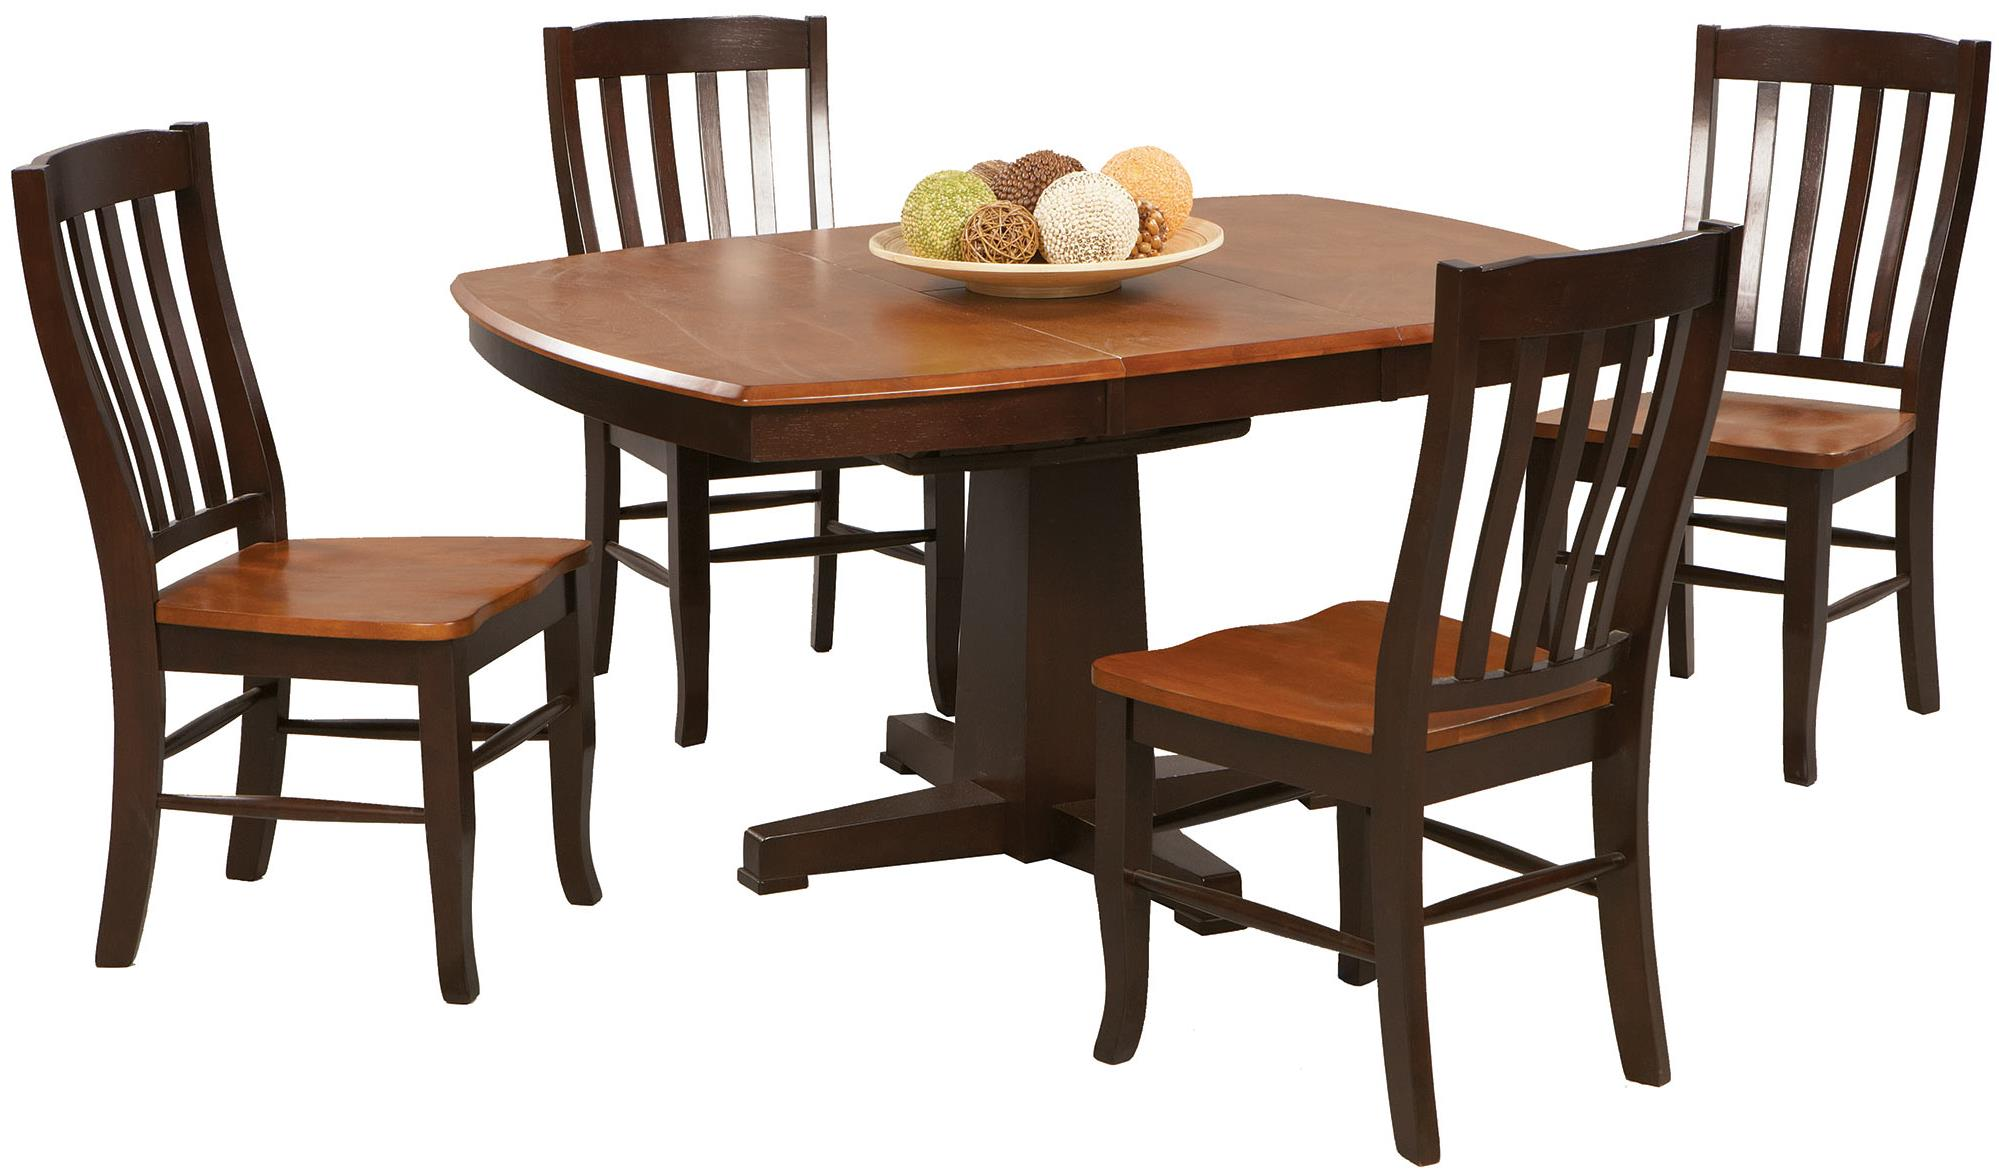 Santa Fe - Chestnut/Espresso Dining Set by Winners Only at Crowley Furniture & Mattress